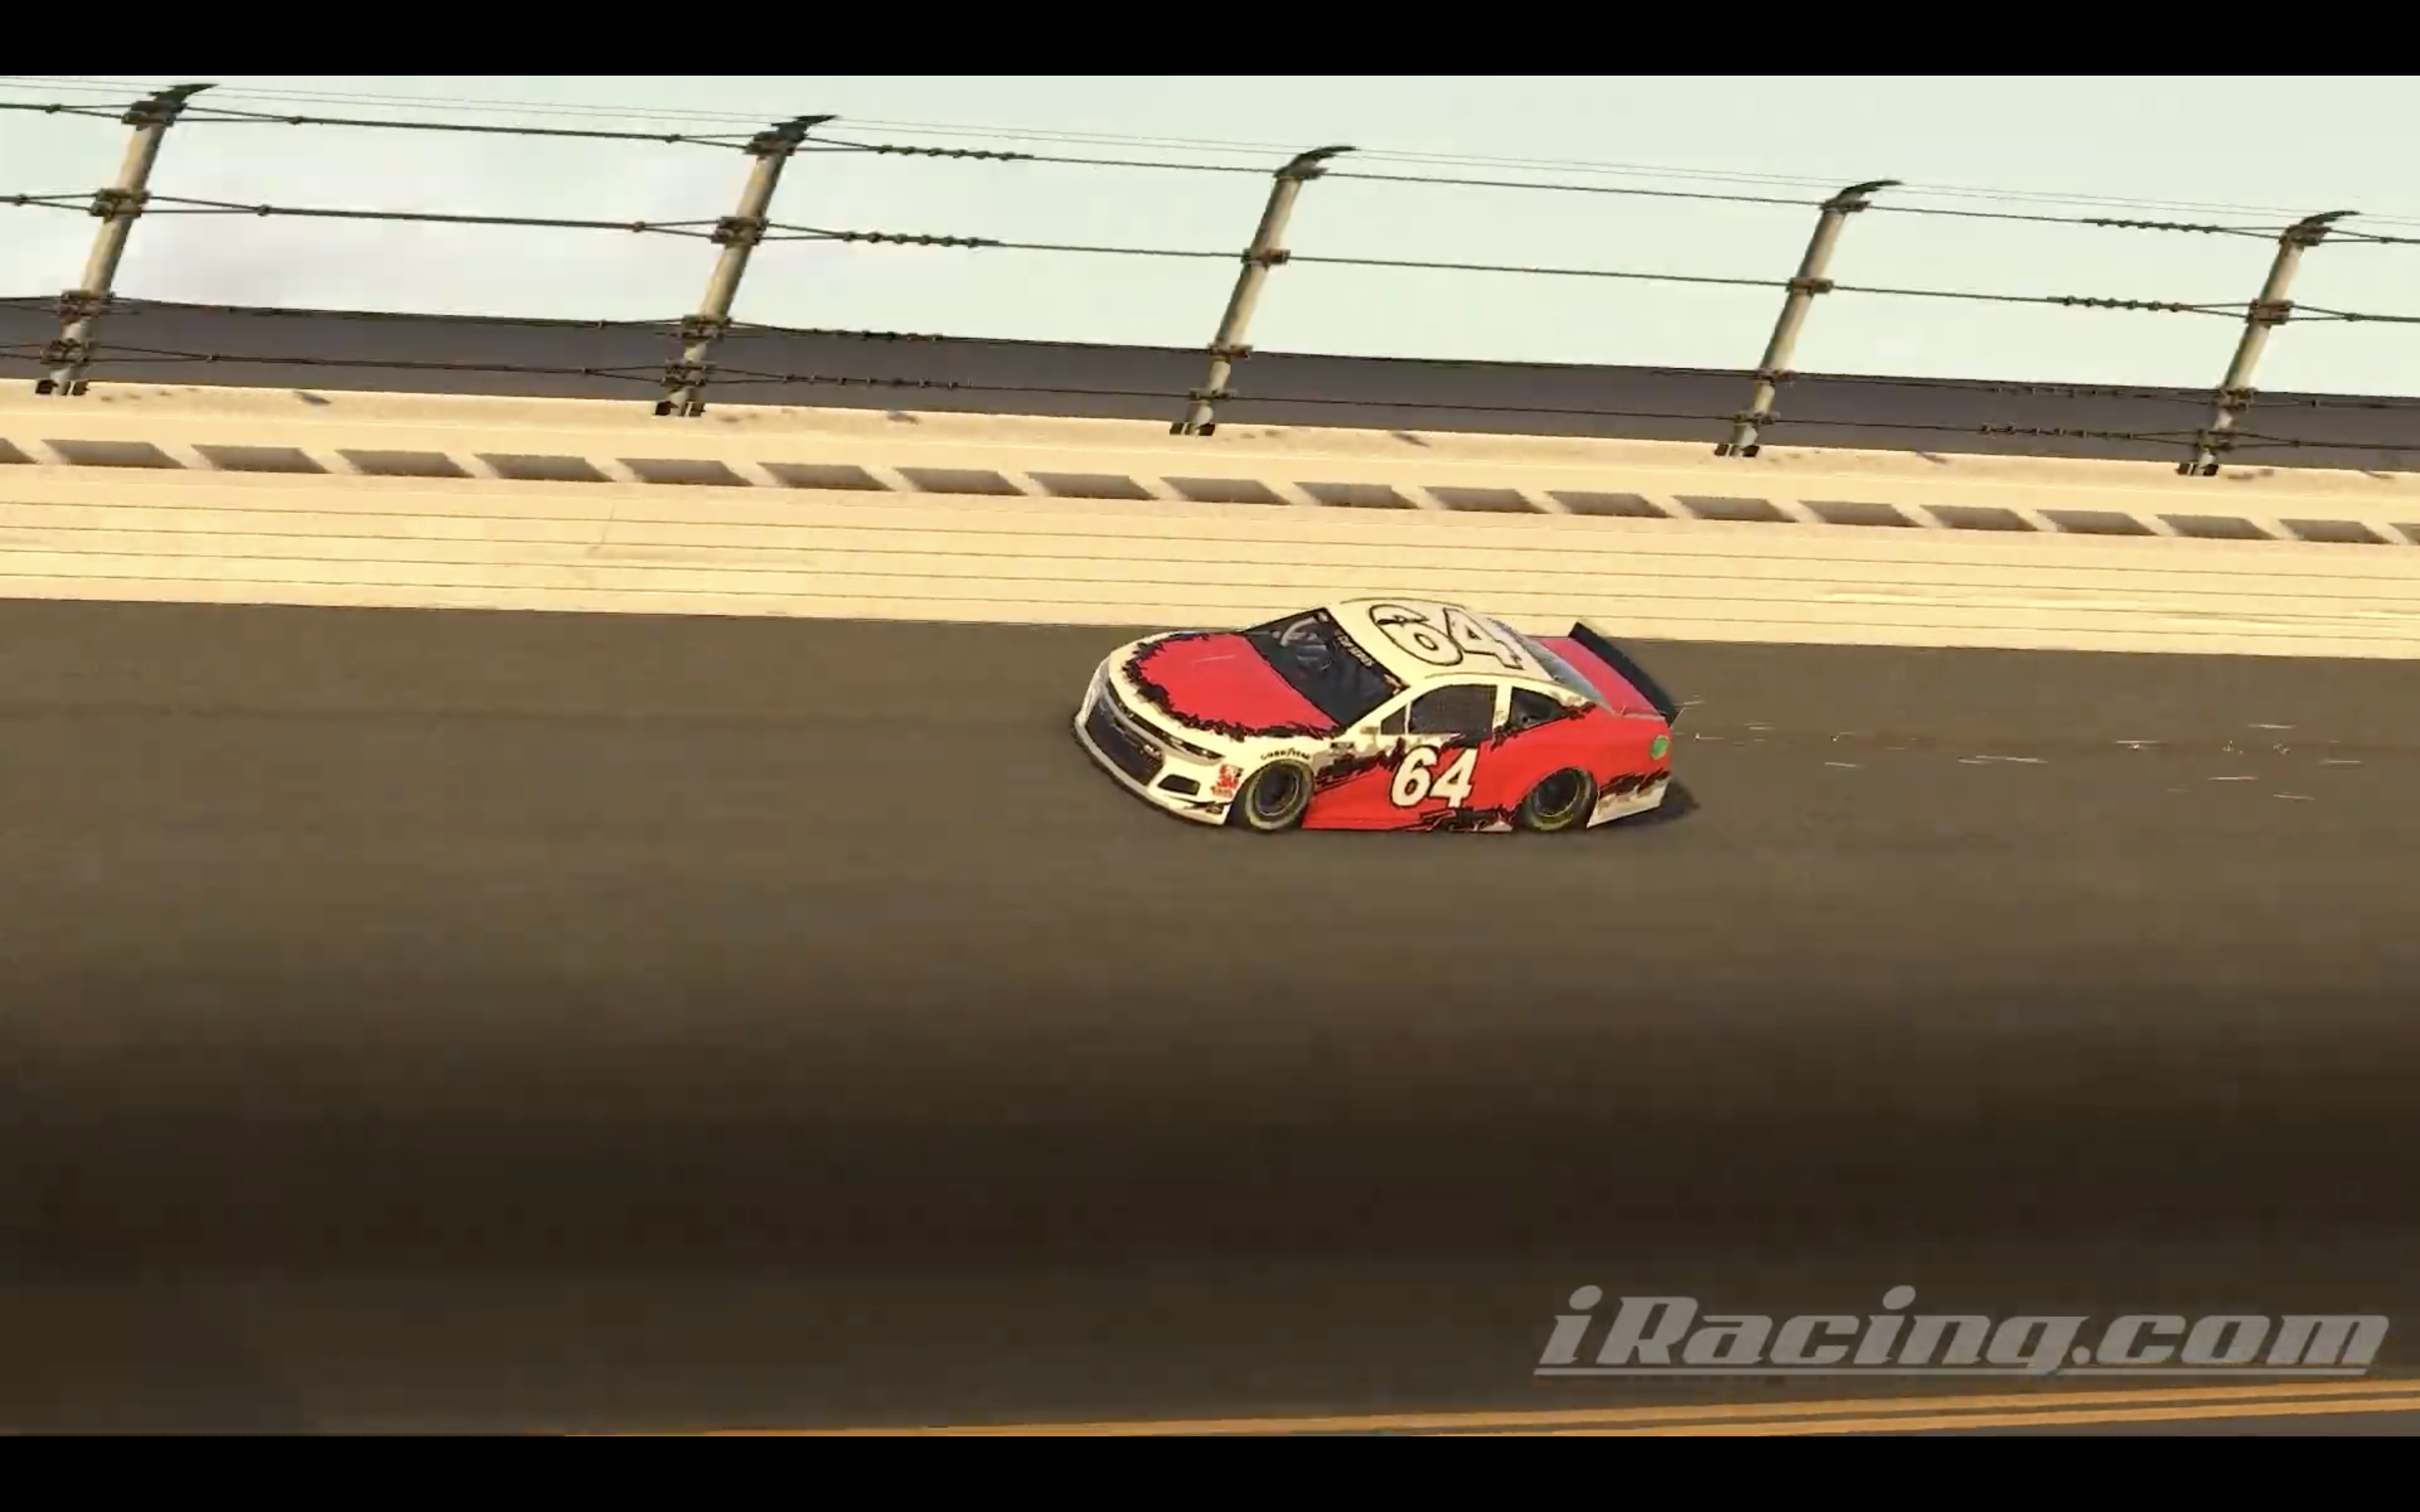 Watch Tommy Kendall Lap the New Daytona NASCAR Road Course in iRacing